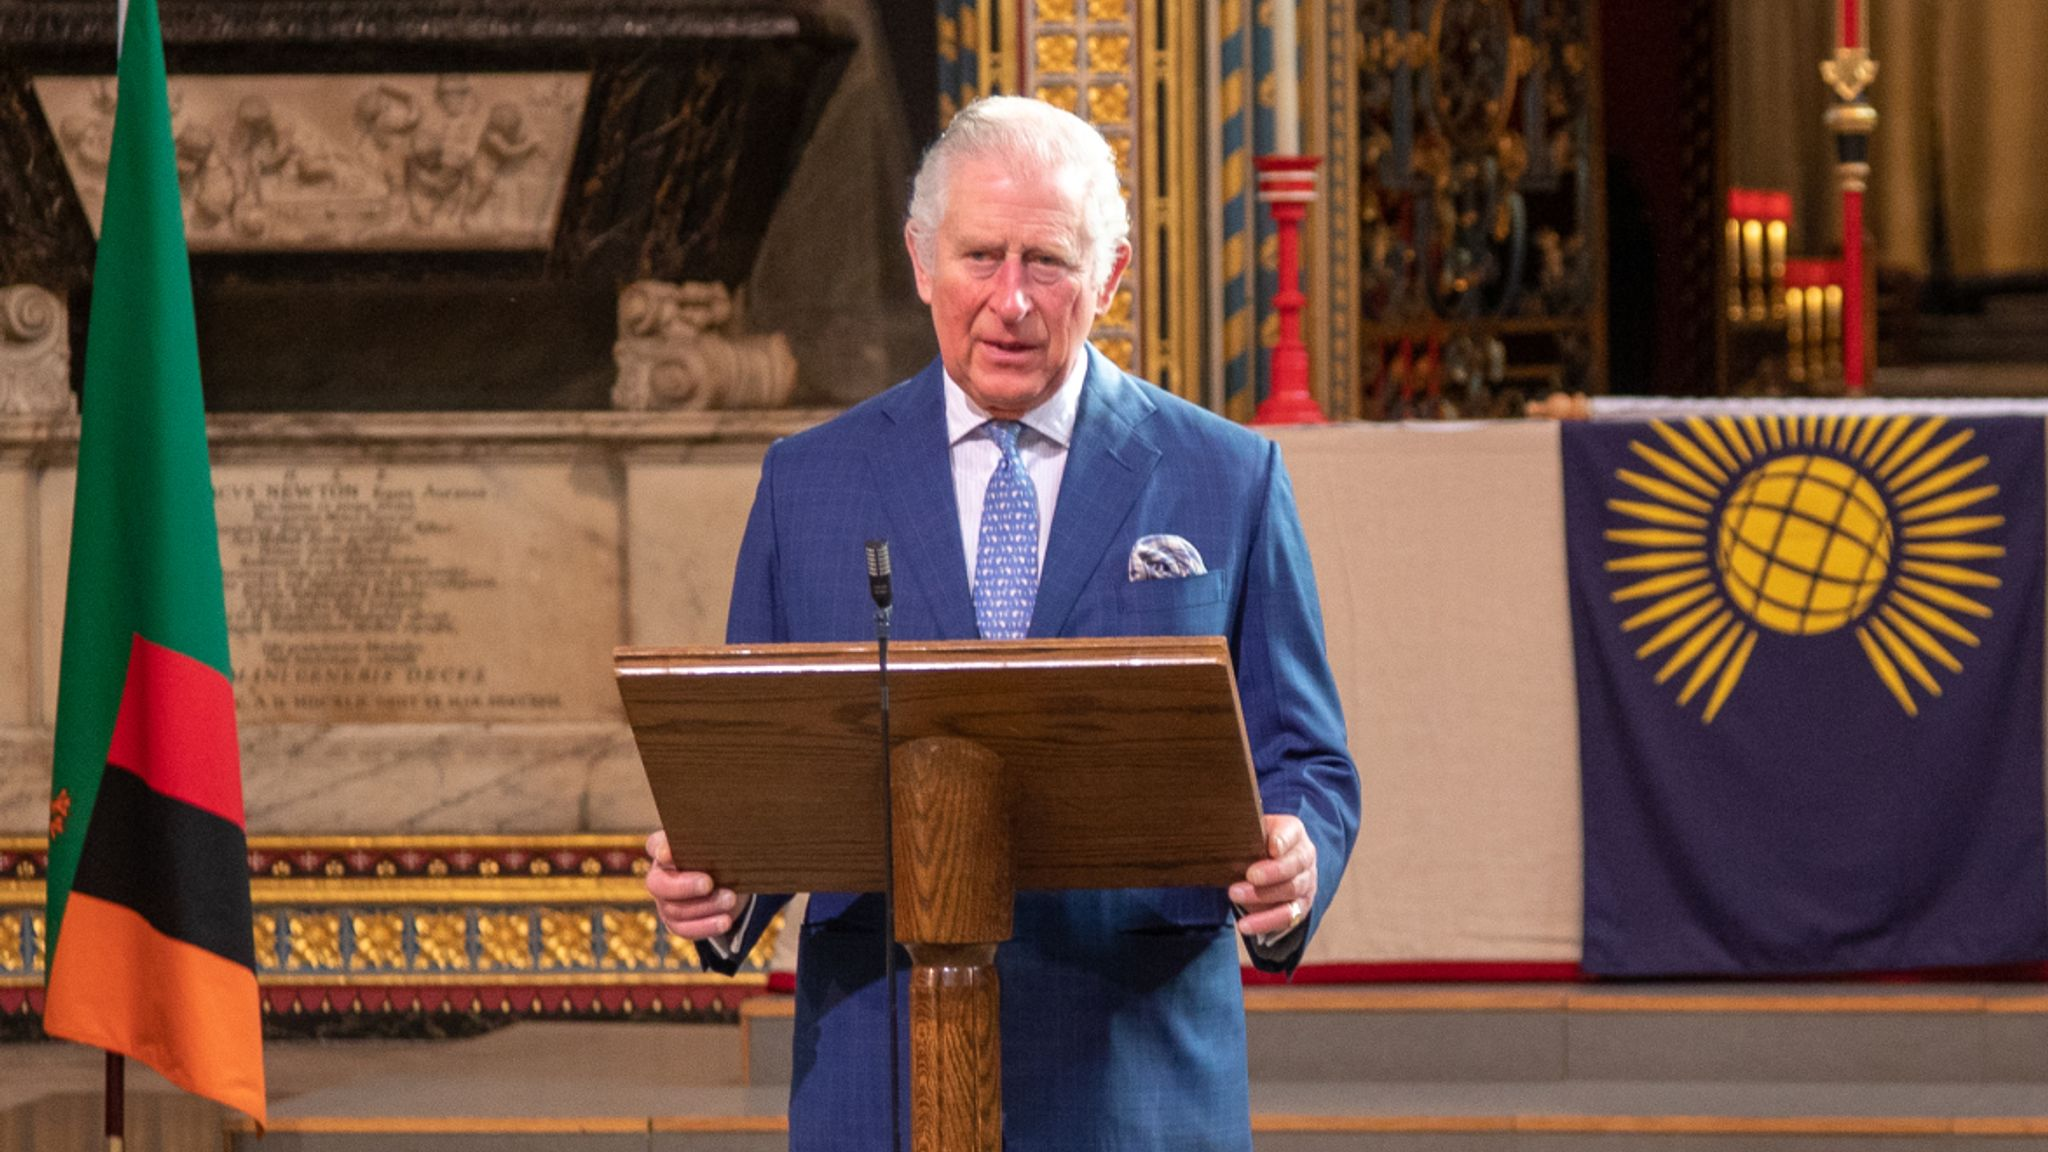 HRH The Prince of Wales speaks to the Commonwealth from Westminster Abbey in advance of Commonwealth Day 2021. Pic: Westminster Abbey/Picture Partnership